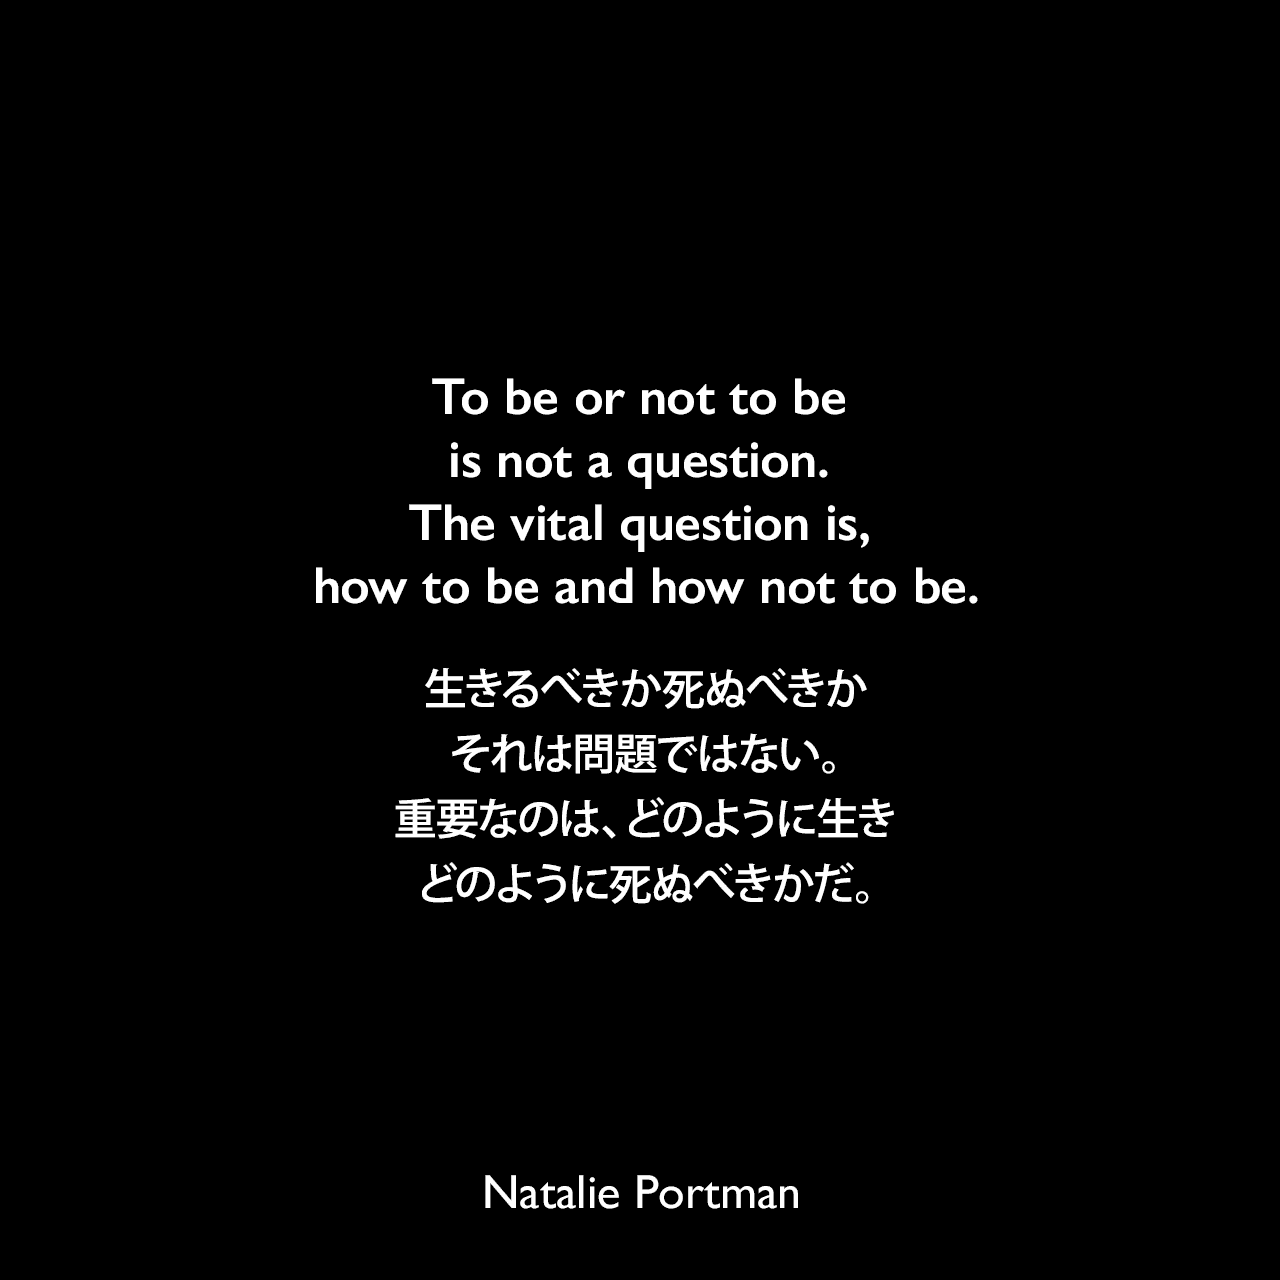 To be or not to be is not a question. The vital question is, how to be and how not to be.生きるべきか死ぬべきか、それは問題ではない。重要なのは、どのように生き、どのように死ぬべきかだ。Natalie Portman